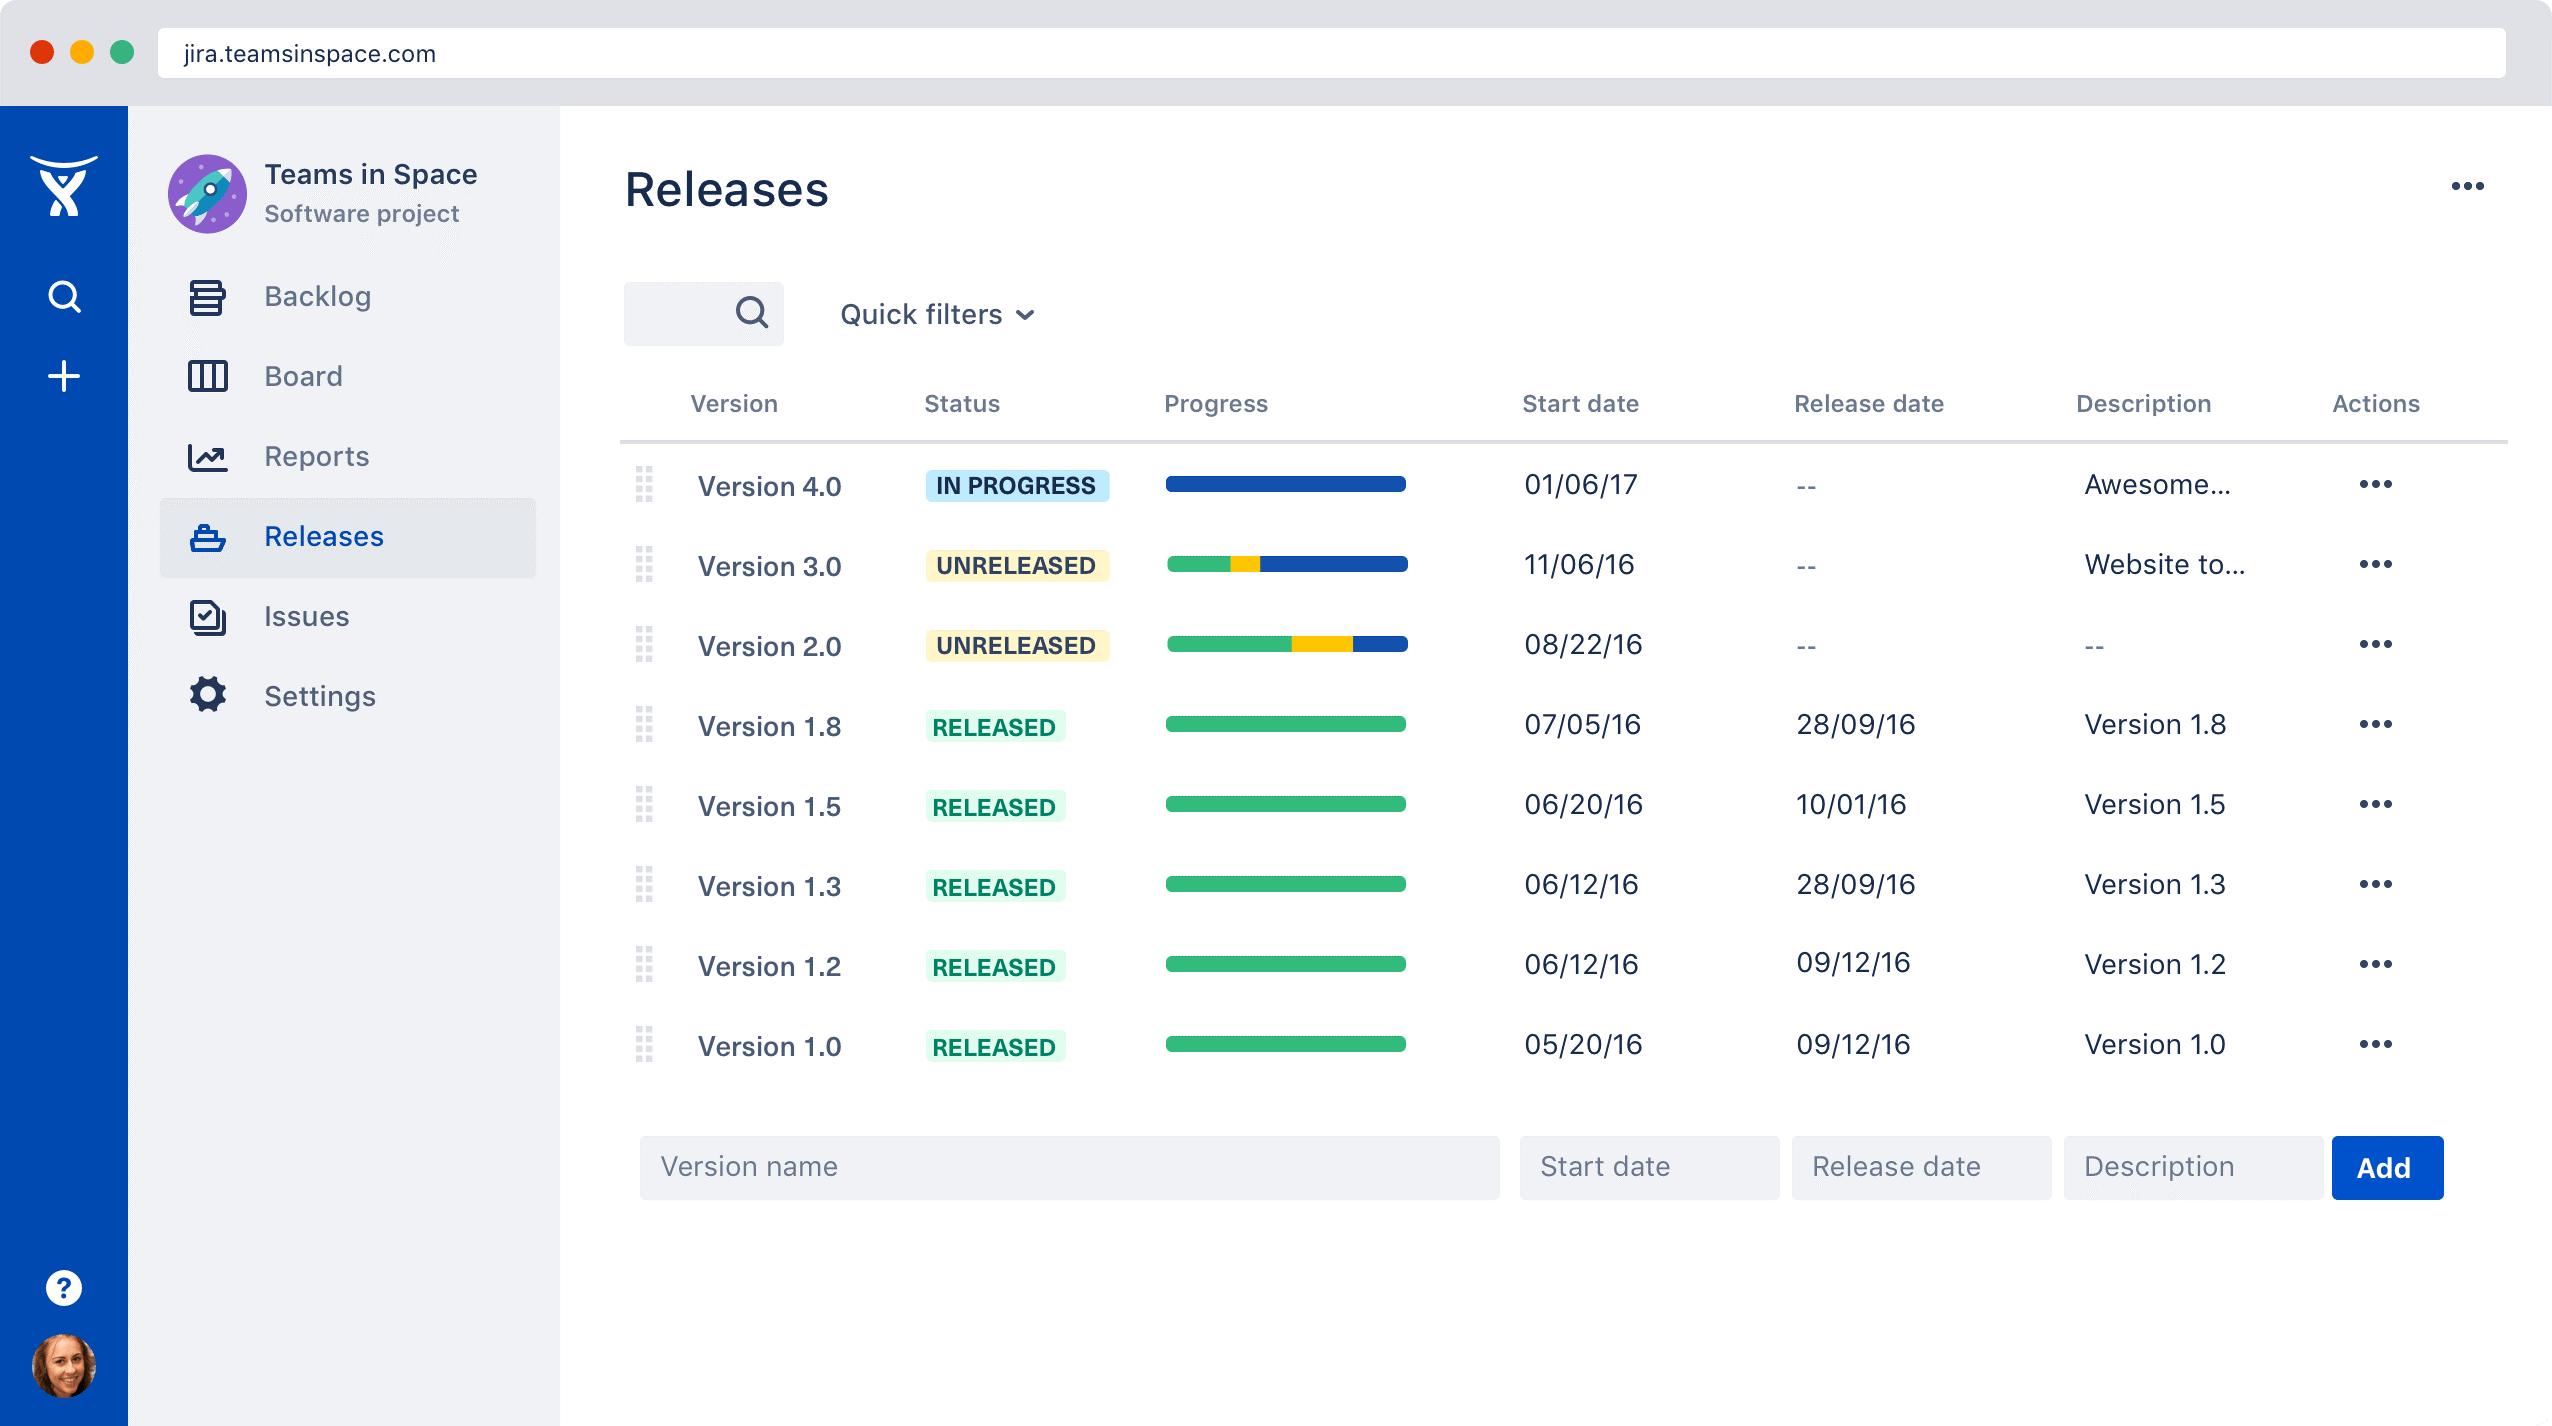 Release feature of Jira